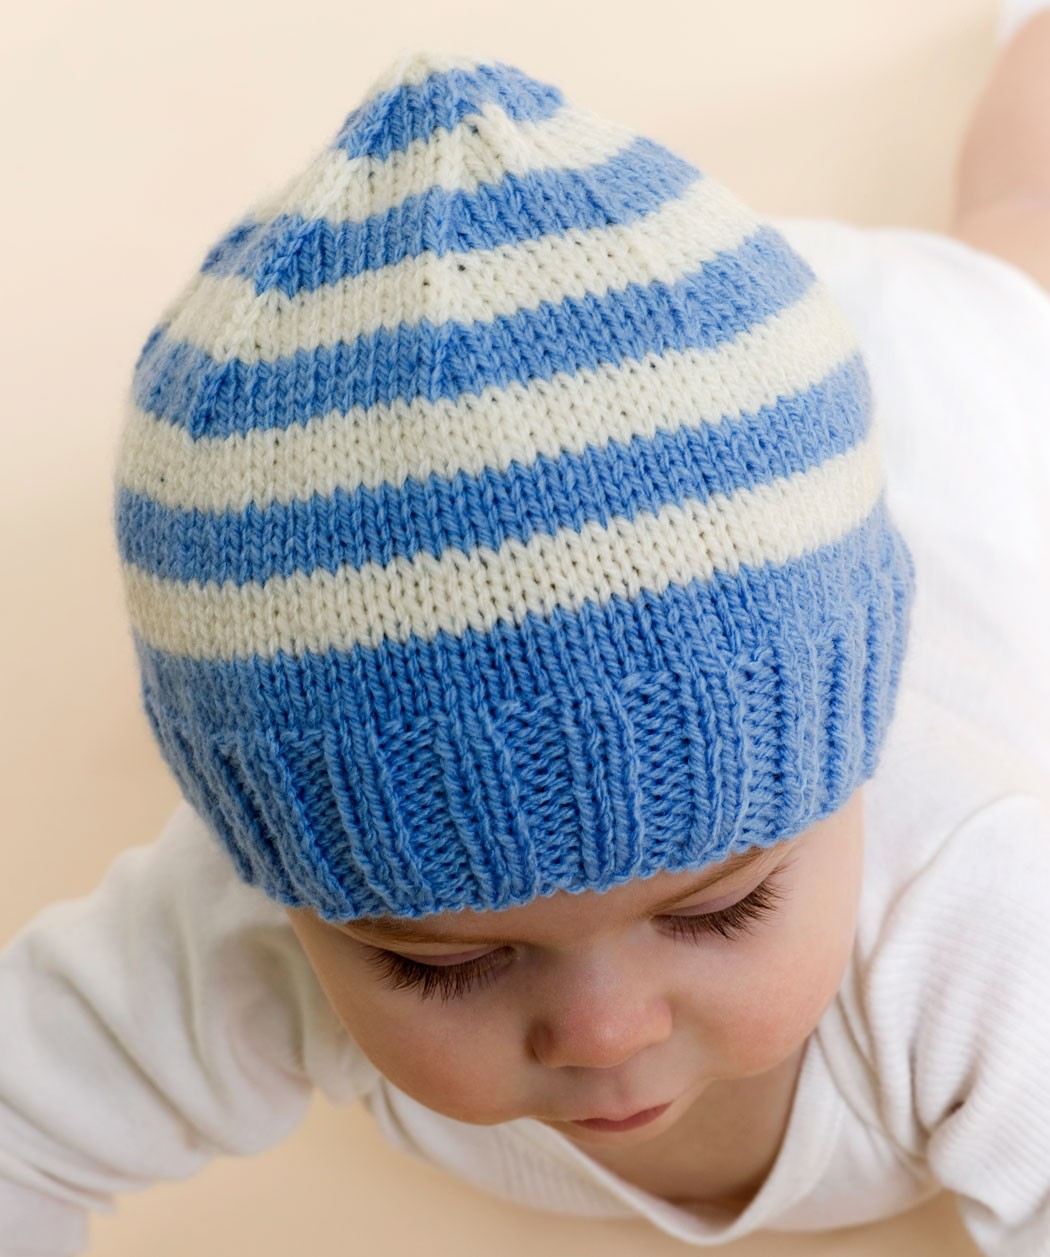 Baby Hat Knitting Pattern | A Knitting Blog